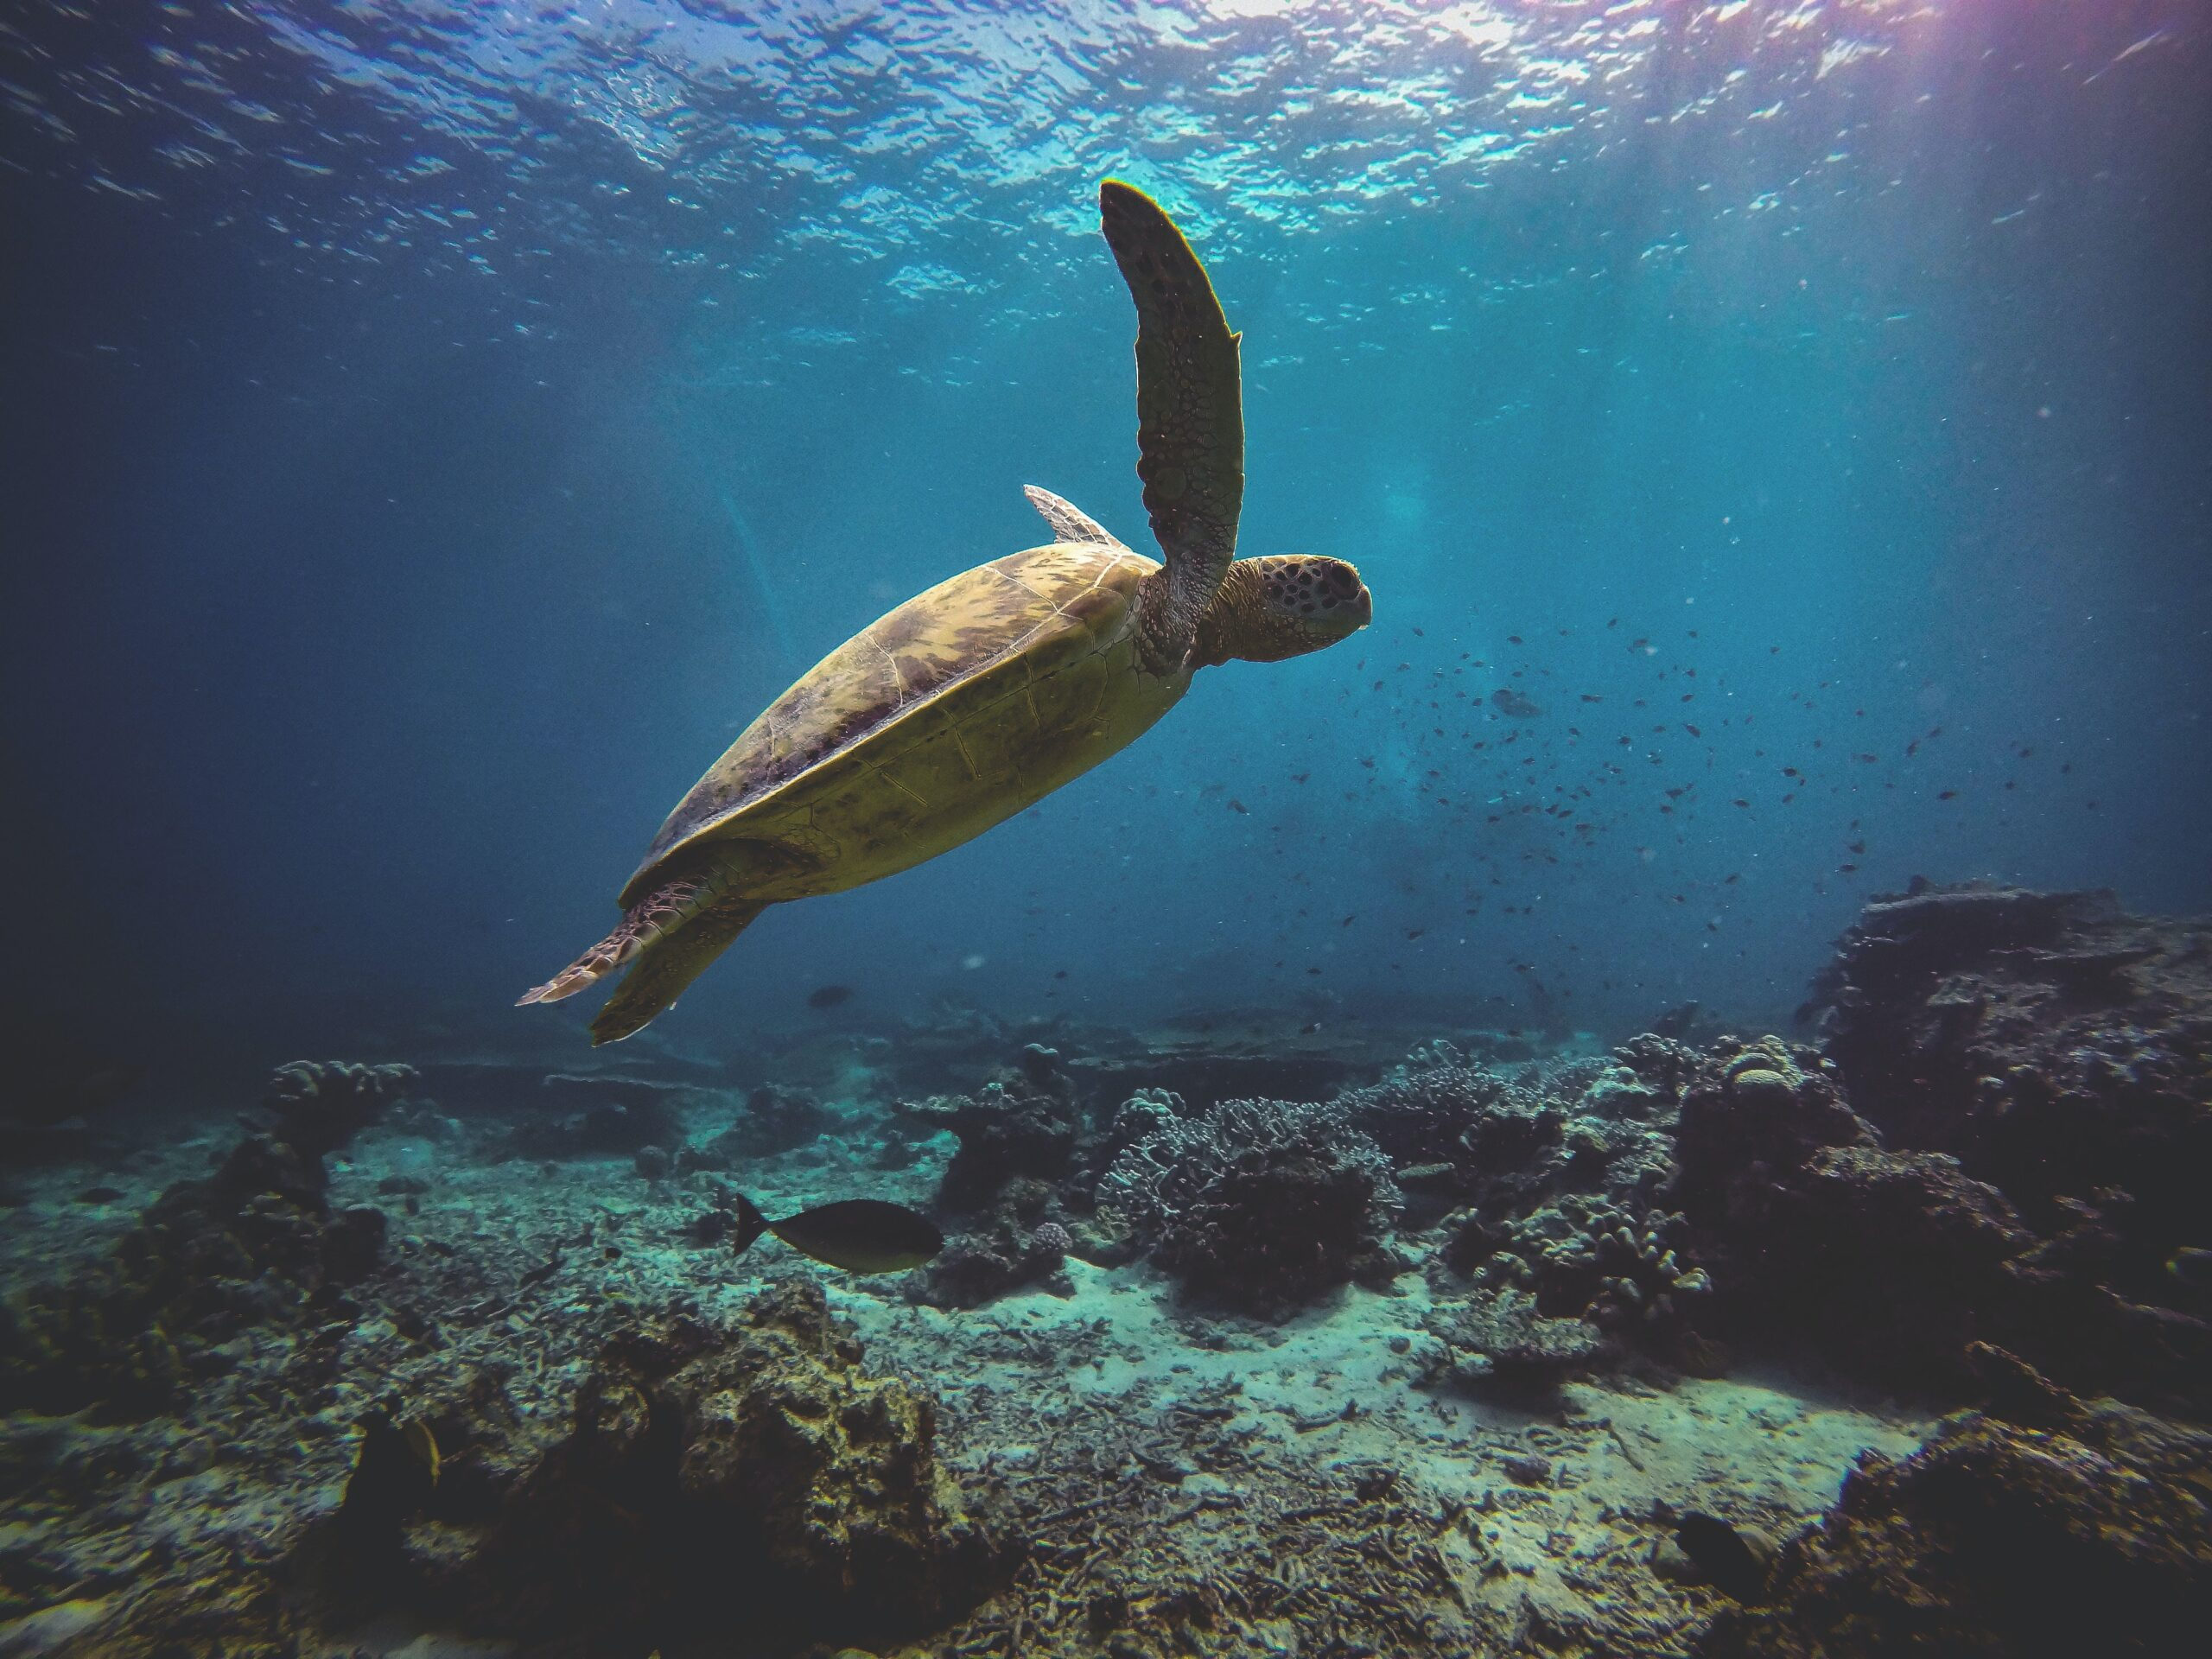 Study: Green Sea Turtles in Eastern Pacific Enjoy Higher Trophic Position